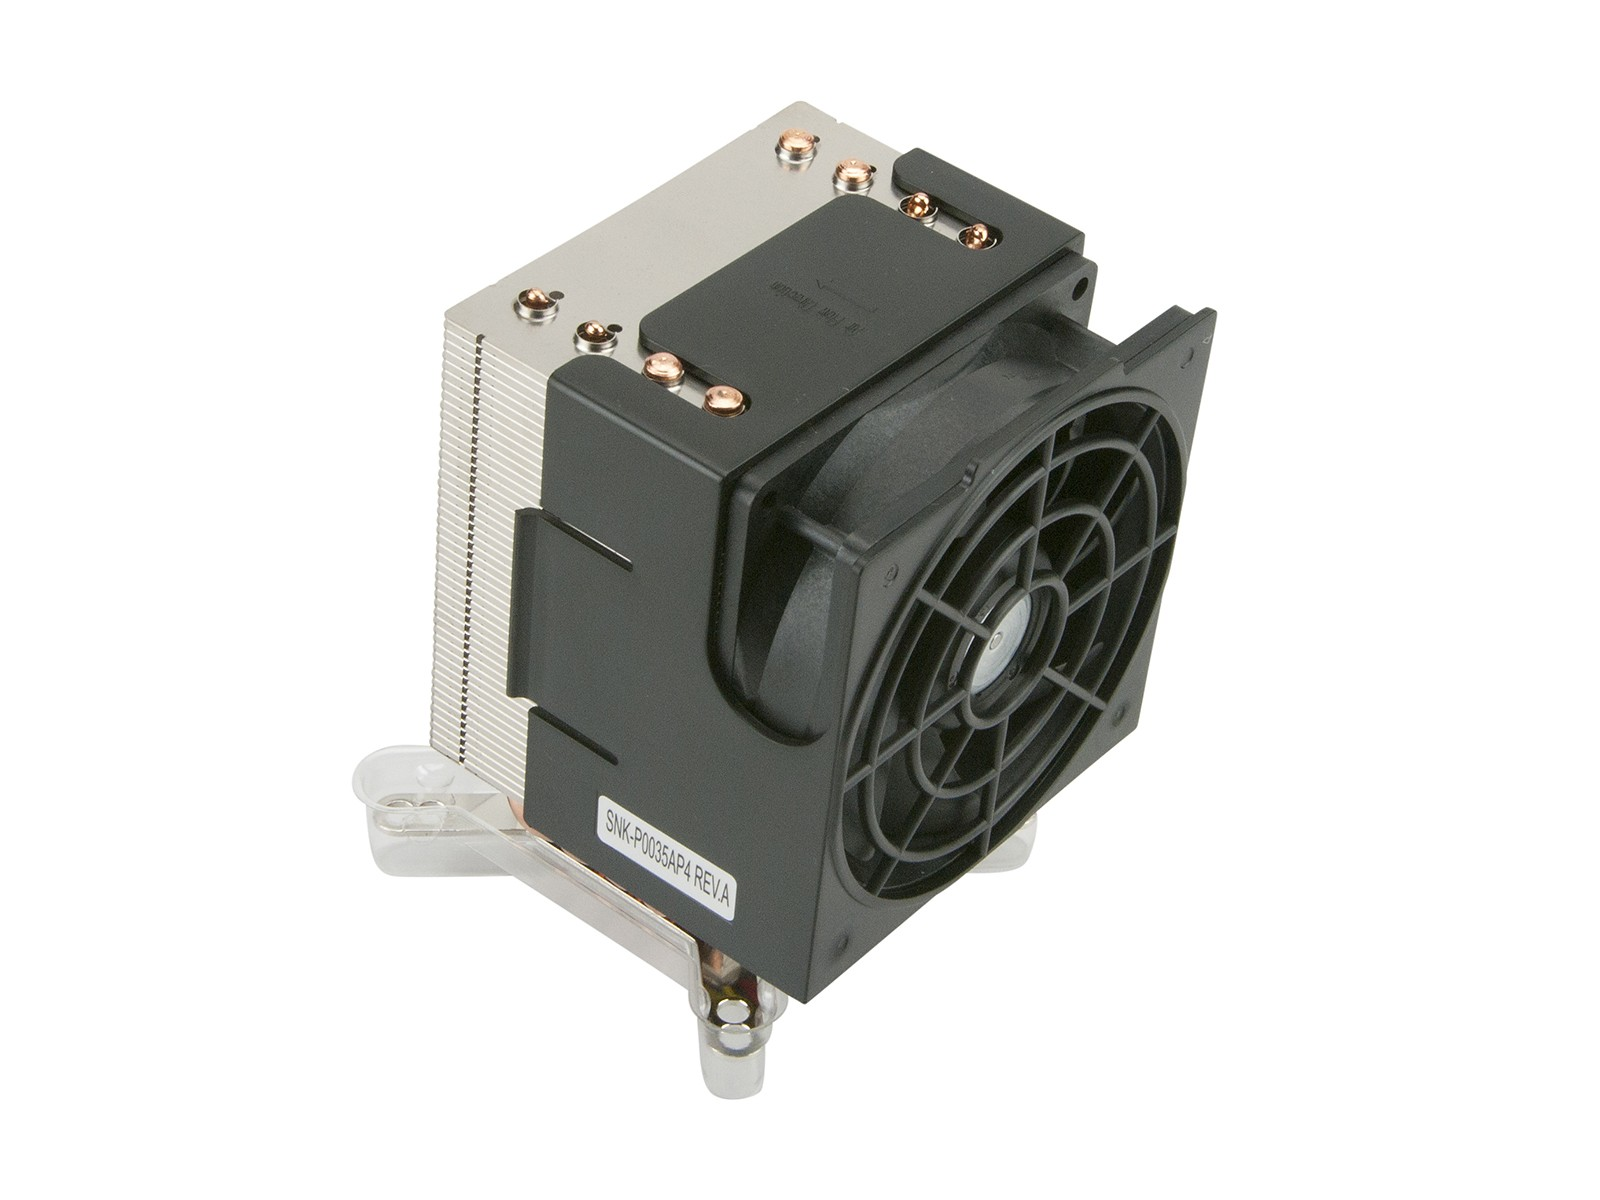 Радиатор Supermicro Heatsink 4U+ 4-pin, SNK-P0035AP4